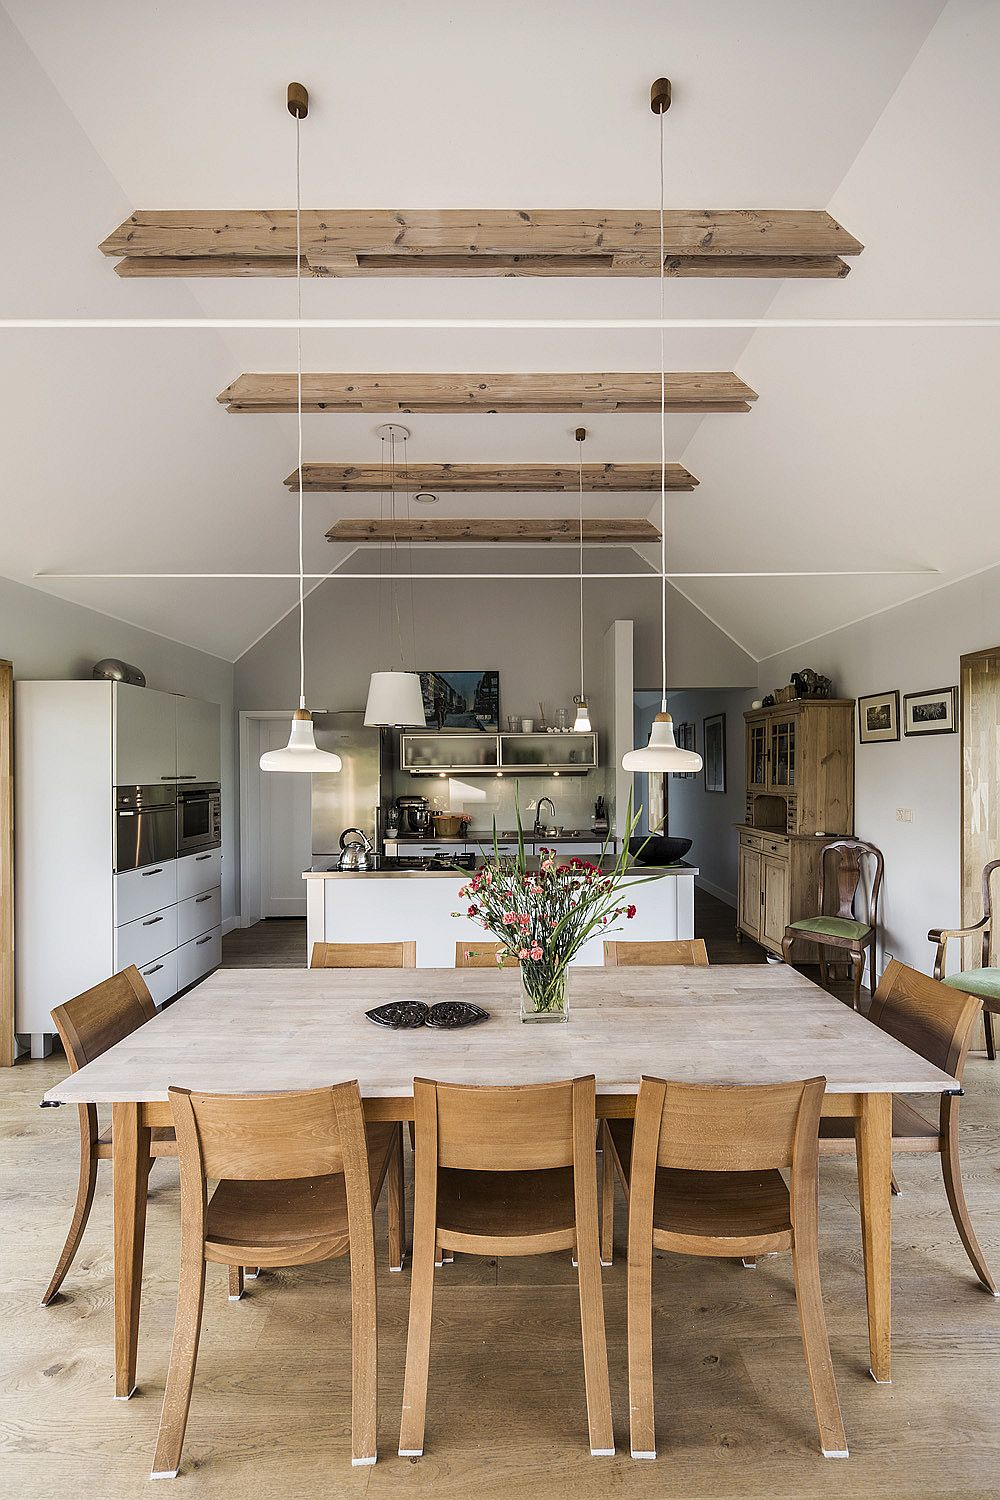 Dining area, kitchen and open living space of the Polish home